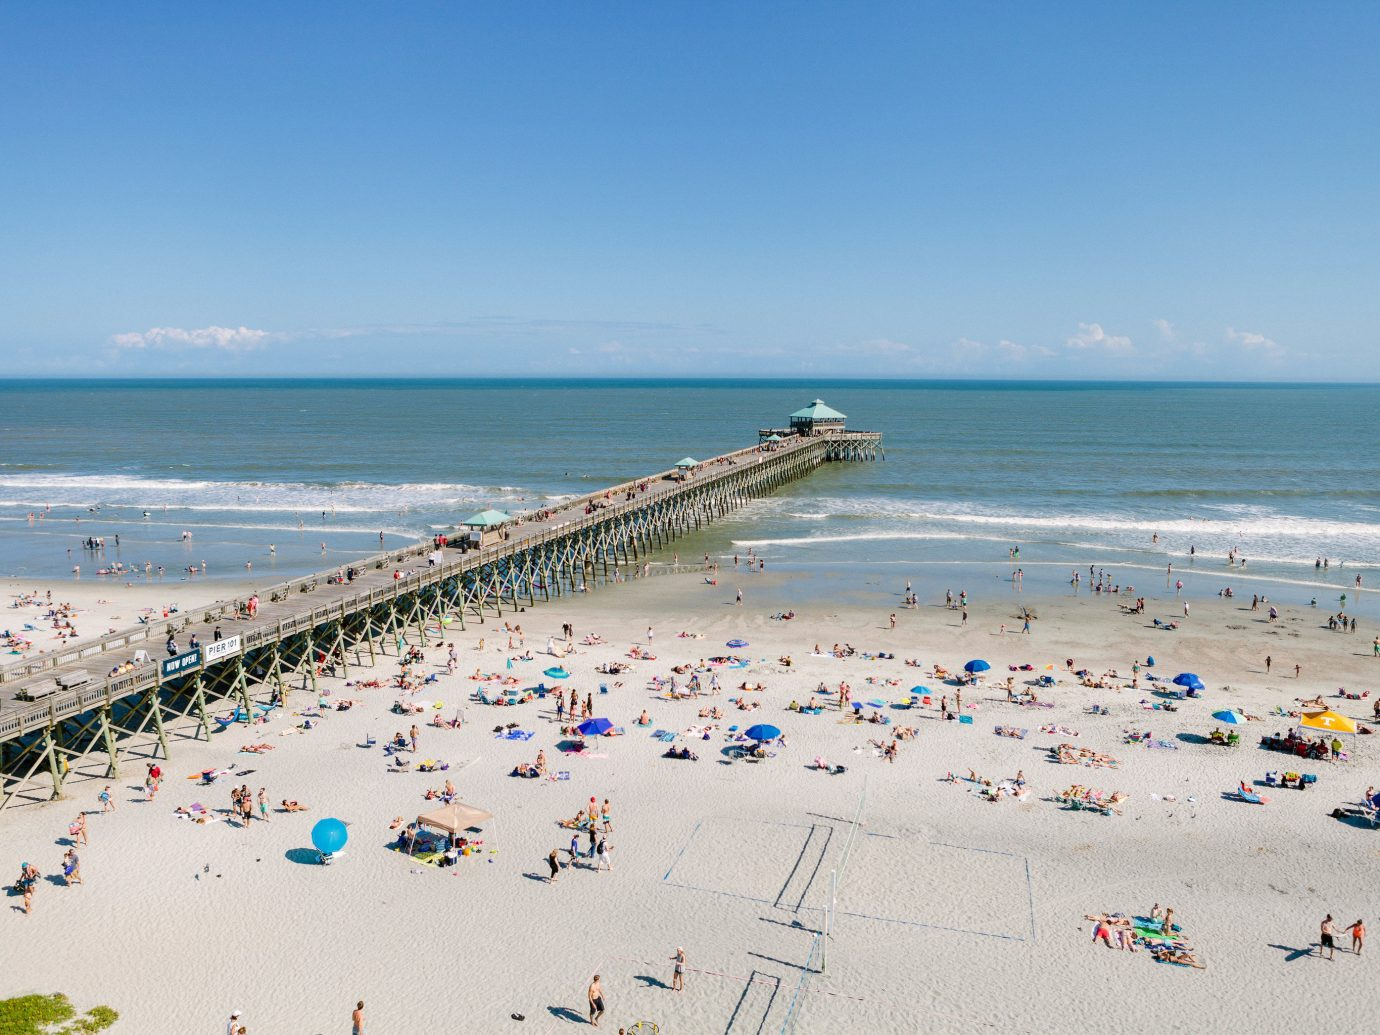 Trip Ideas sky outdoor water Beach ground Sea body of water shore Nature Coast coastal and oceanic landforms Ocean vacation horizon tourism sand people wave pier bay sandy day